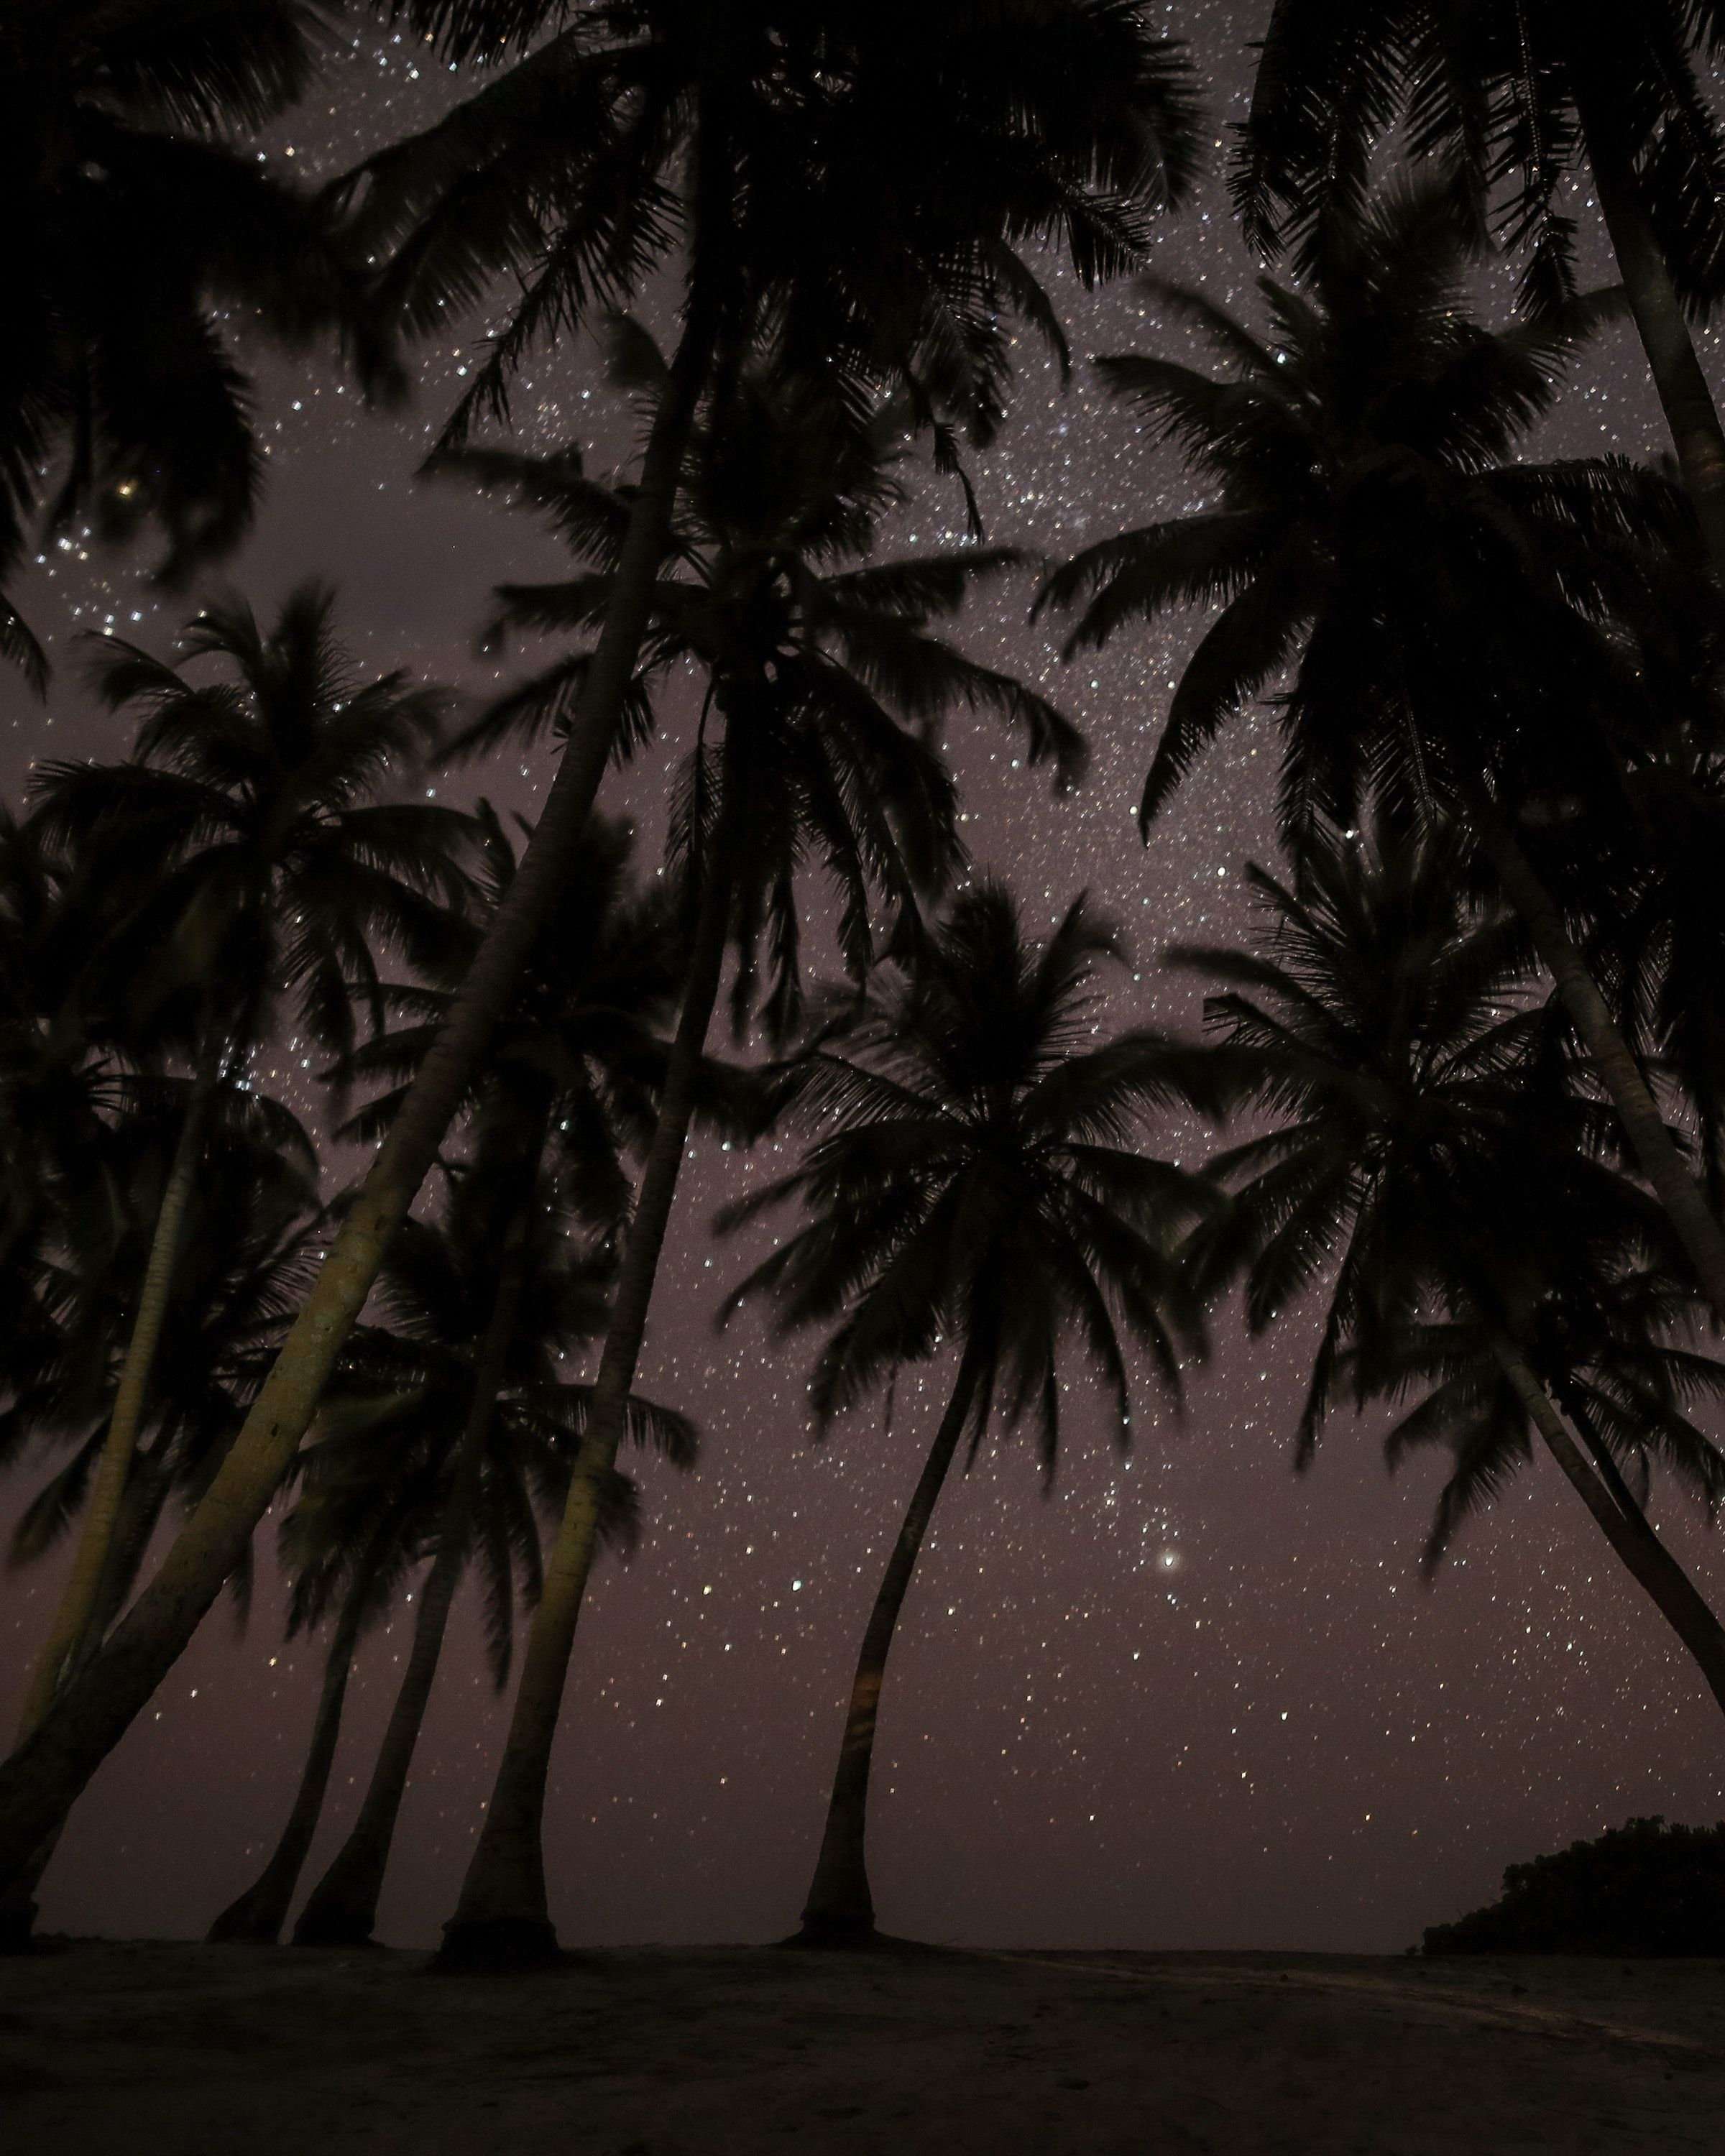 Nature Palm Night Sky Star Starry Wallpapers Hd 4k Background